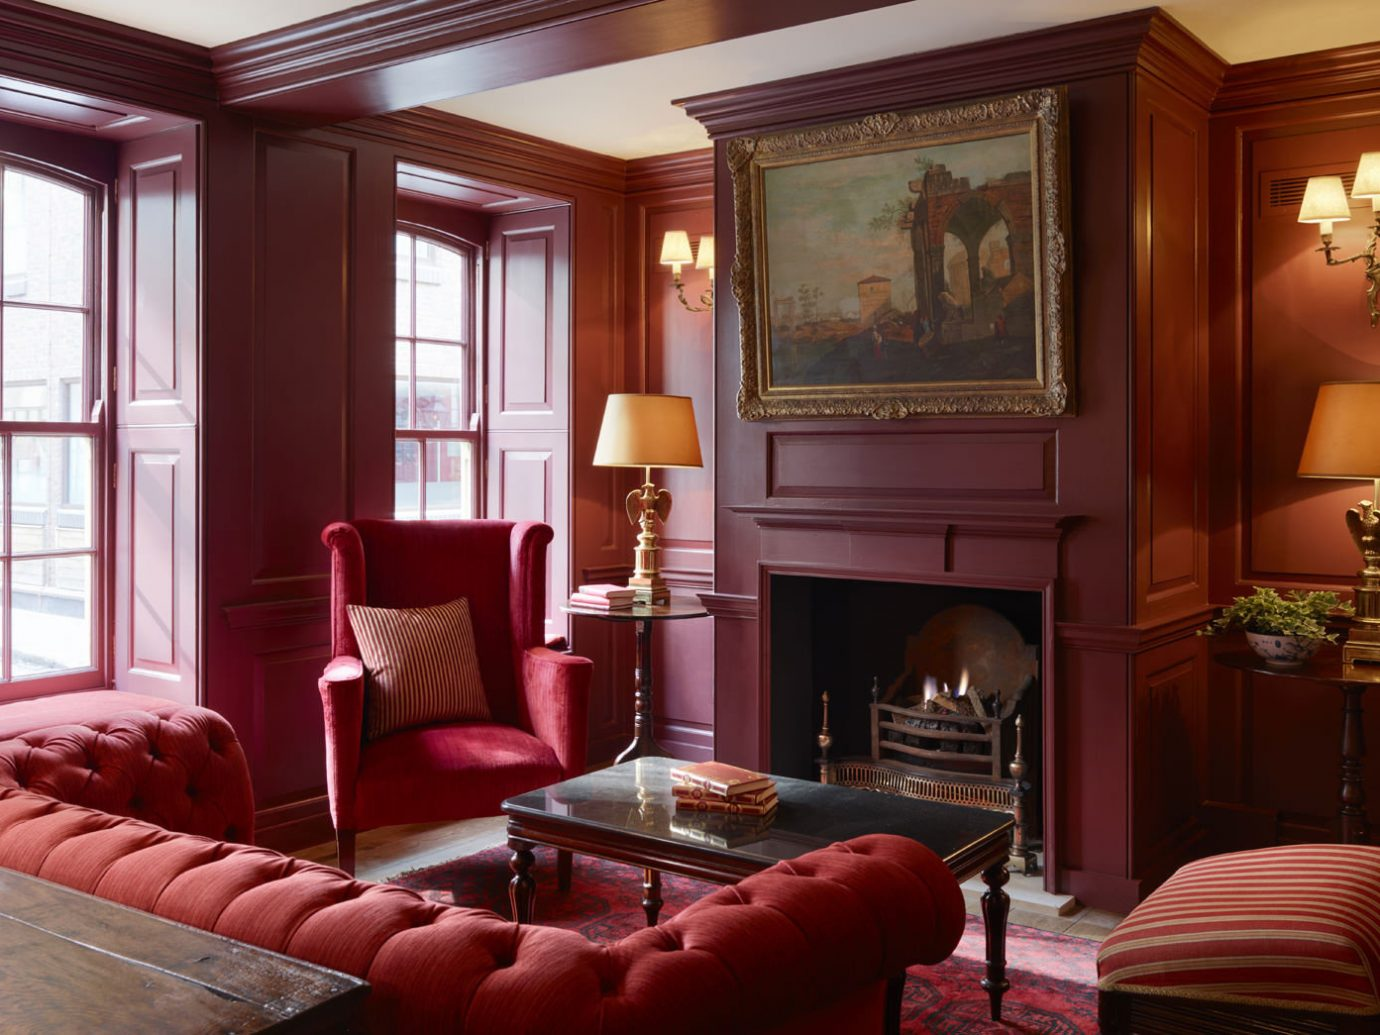 Boutique Hotels Hotels indoor room window Living sofa floor wall red property living room interior design furniture home estate Suite decorated mansion cottage dining room area leather flat